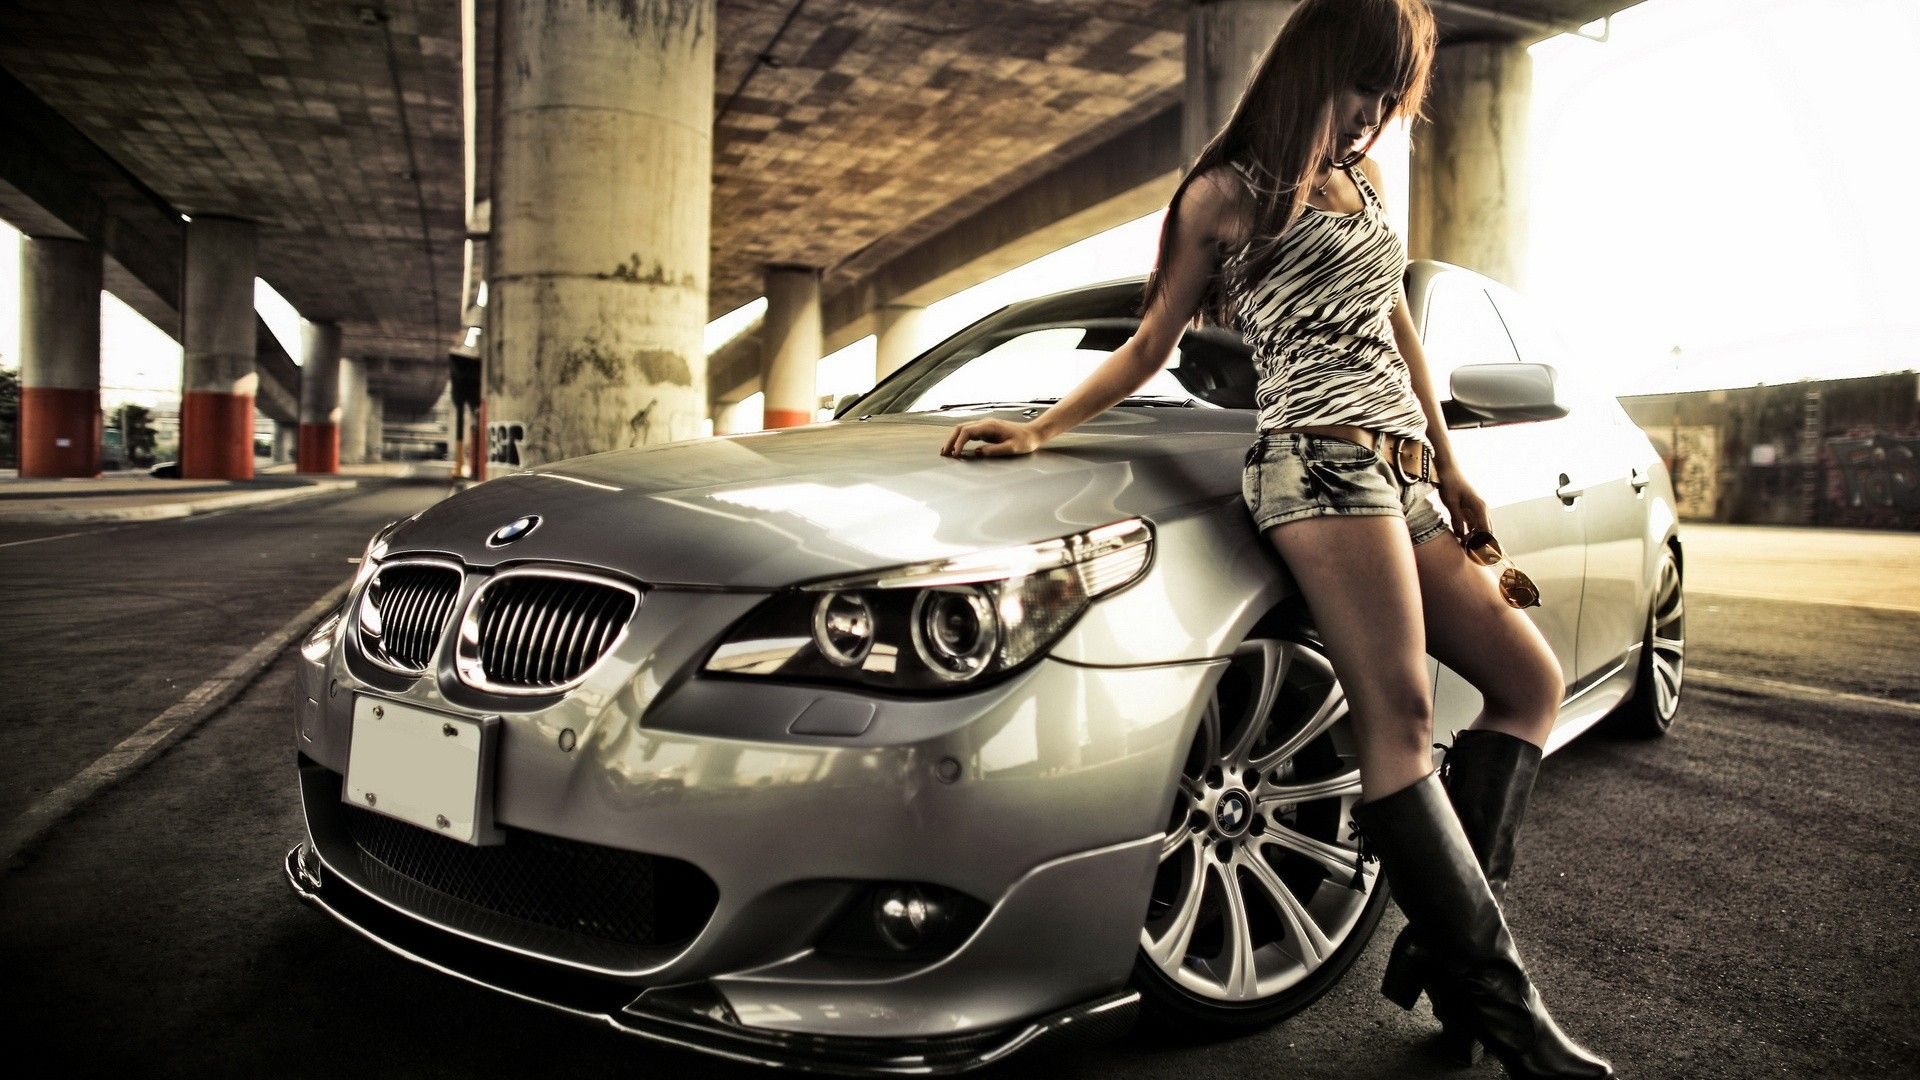 Tons of awesome bmw m3 wallpapers to download for free. Top Bmw Girl Wallpaper Hq Download Wallpapers Book Your 1 Source For Free Download Hd 4k High Quality Wallpapers